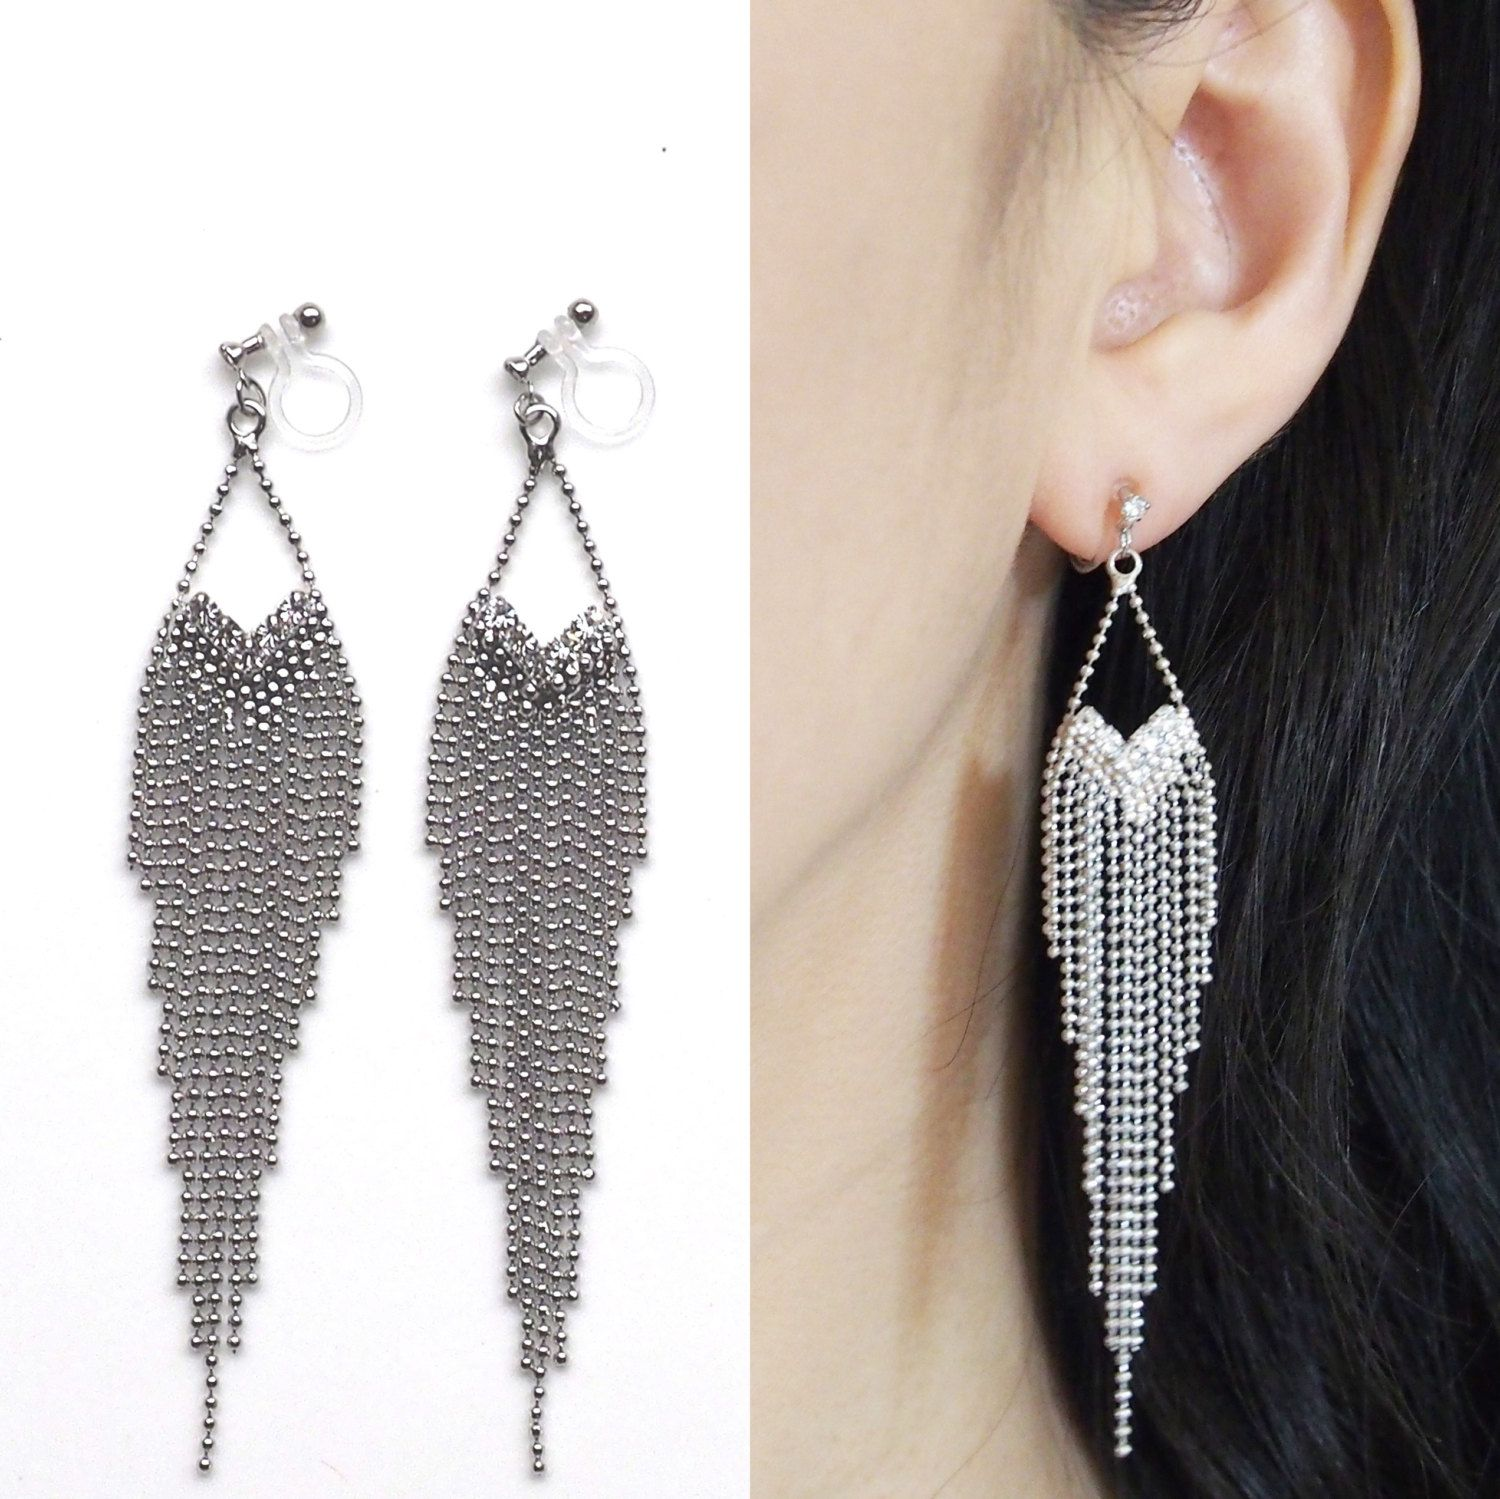 invisible clip on earrings non pierced earrings Silver fringe clip on earrings long chain clip on earrings dangle clip on earrings